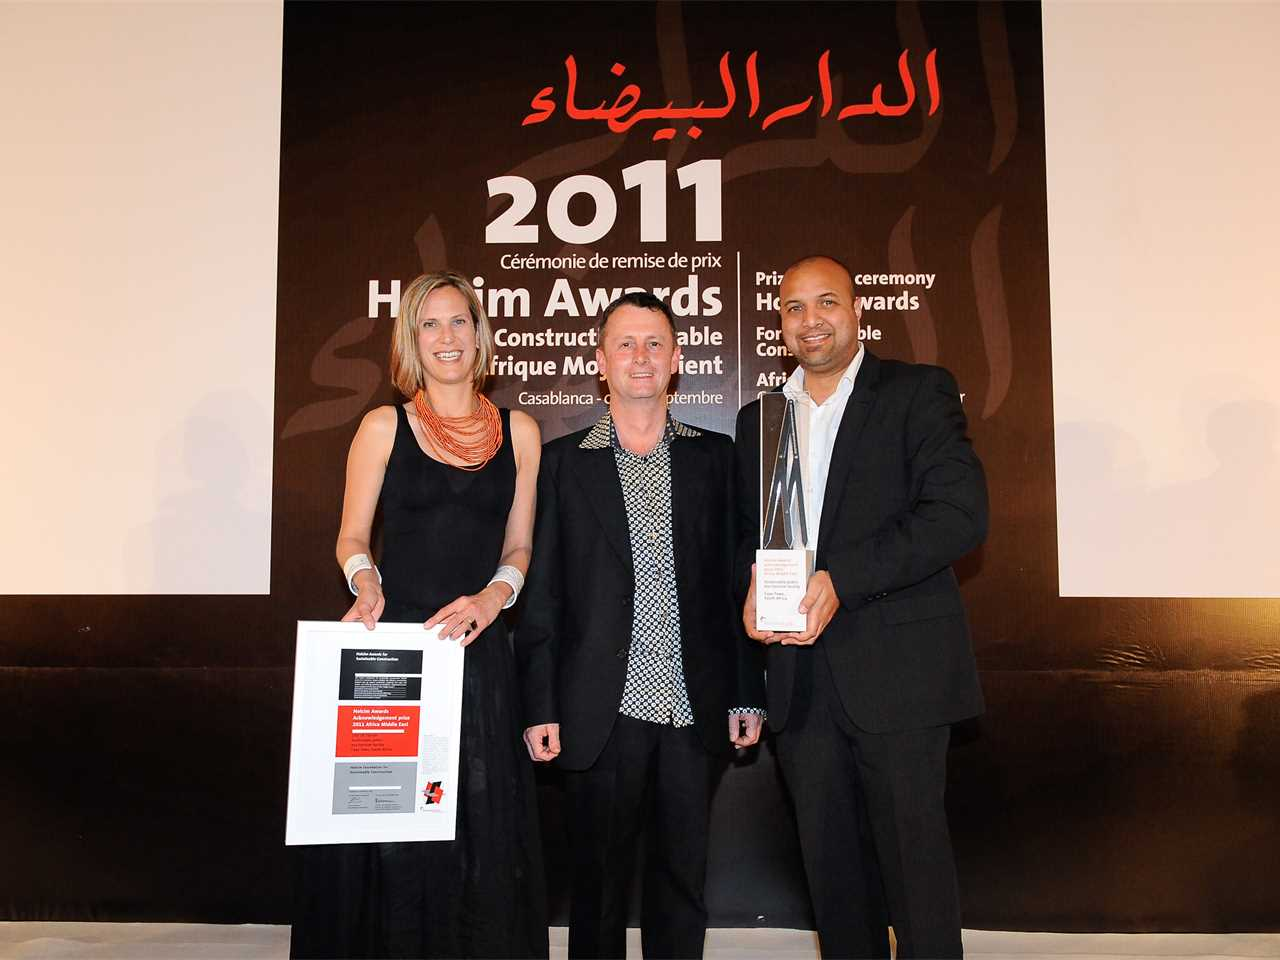 Holcim Awards 2011 ceremony for Africa Middle East – Casablanca, Morocco